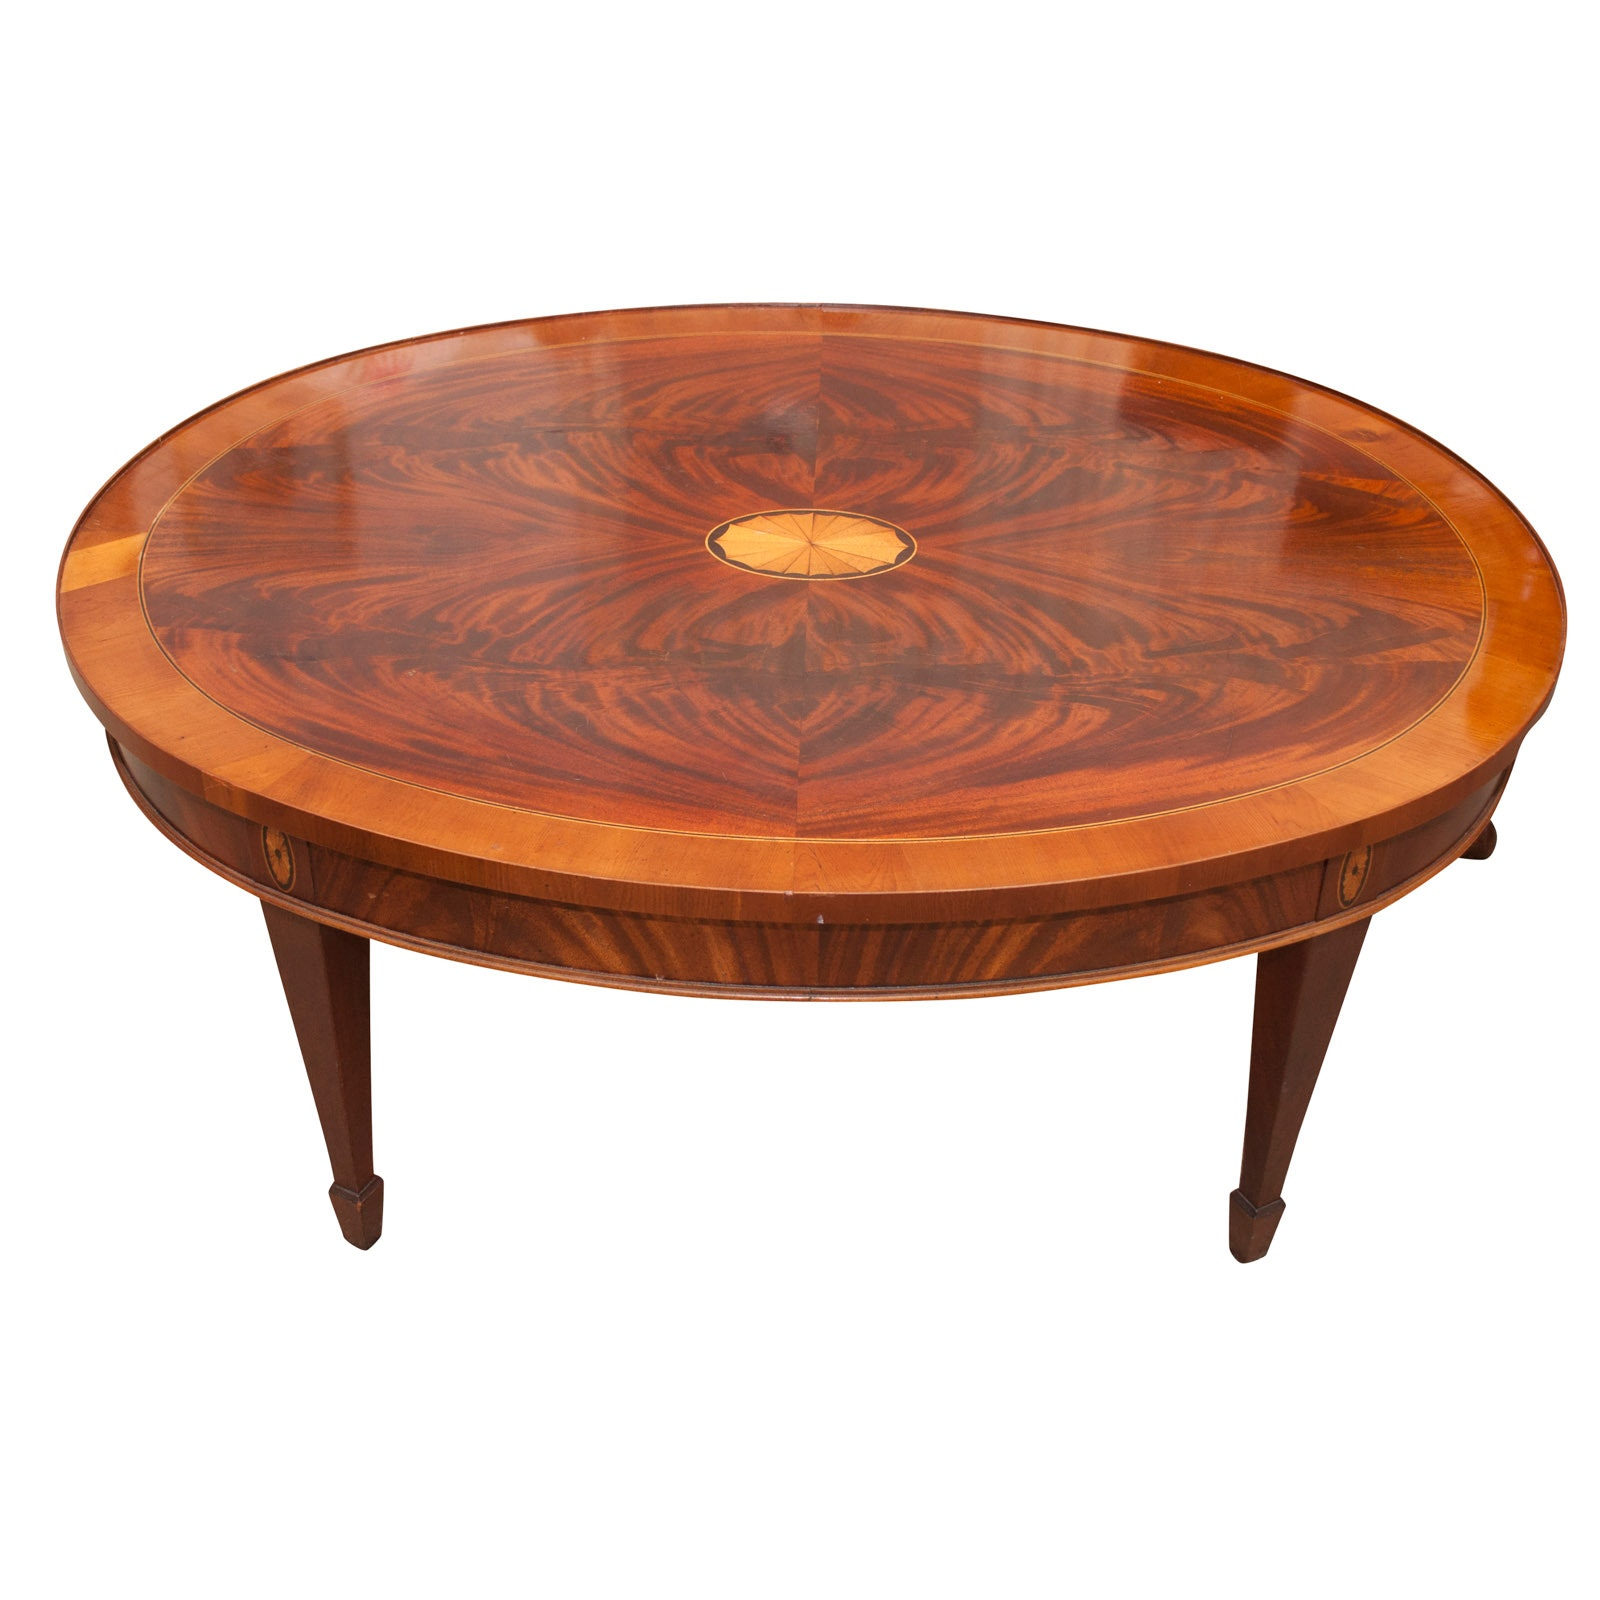 """Copley Place Collection"" Mahogany and Marquetry Coffee Table by Hekman"